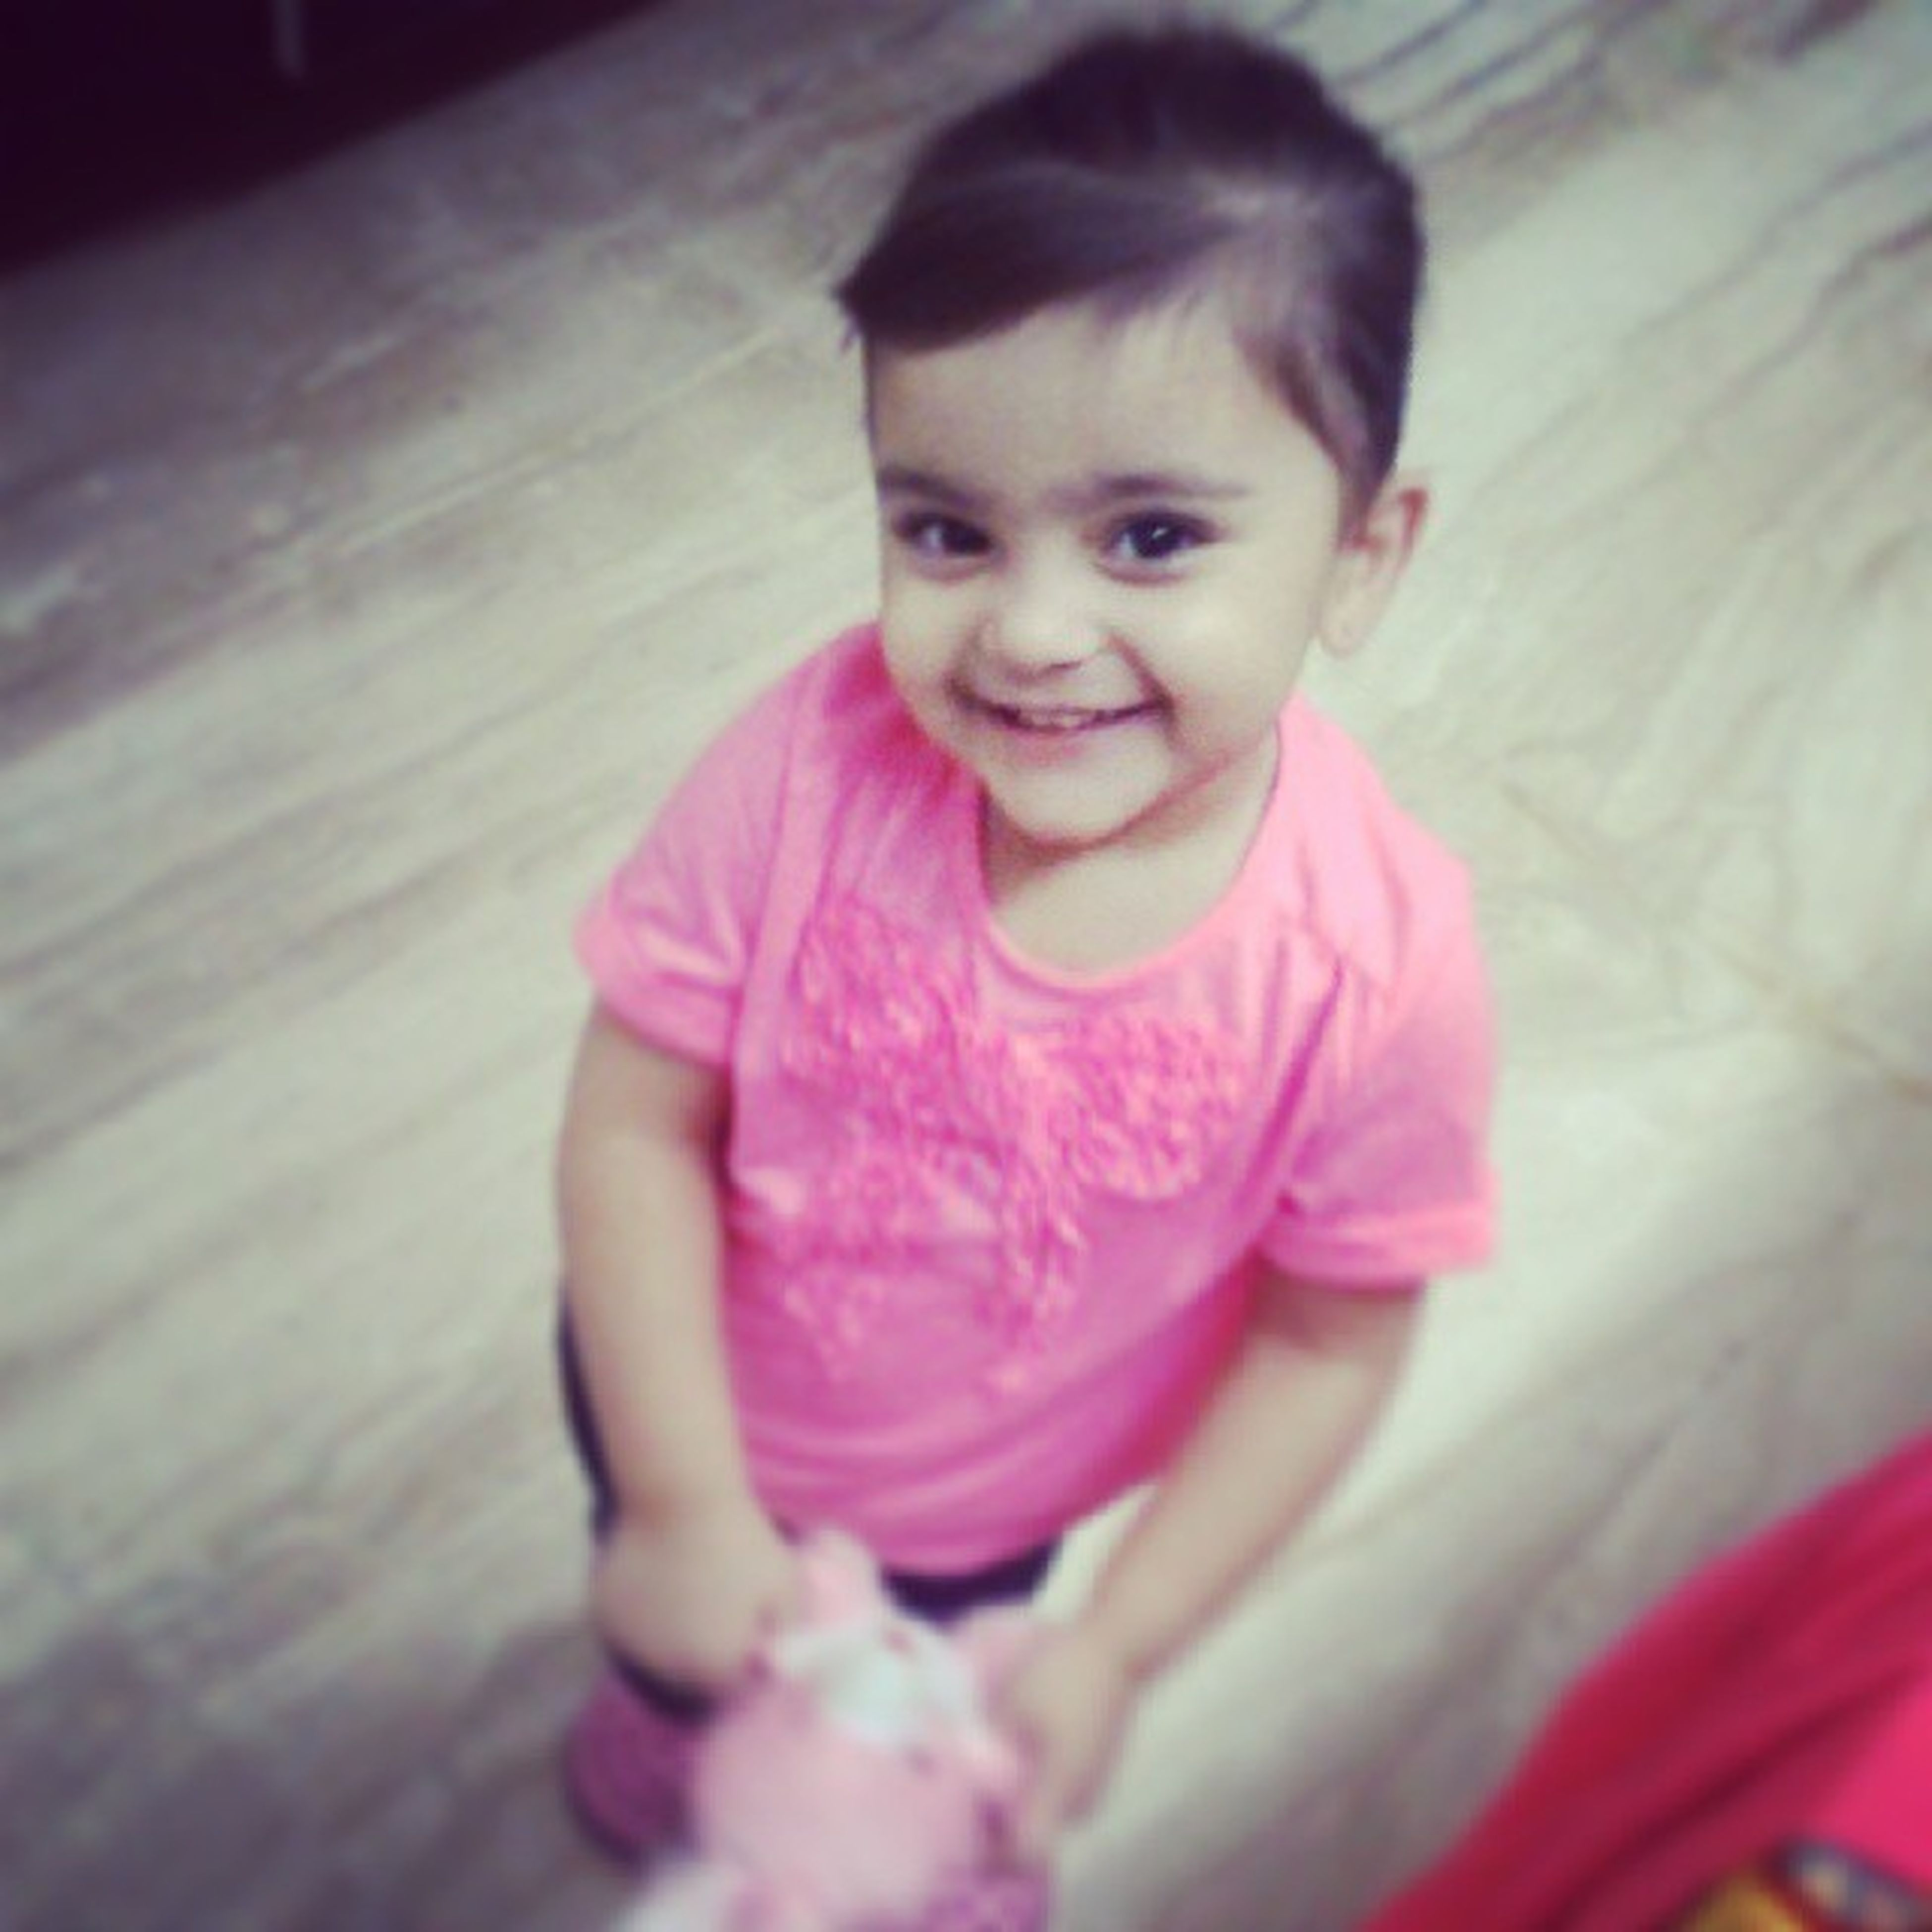 childhood, innocence, elementary age, person, cute, looking at camera, portrait, indoors, girls, front view, lifestyles, boys, casual clothing, leisure activity, smiling, happiness, baby, high angle view